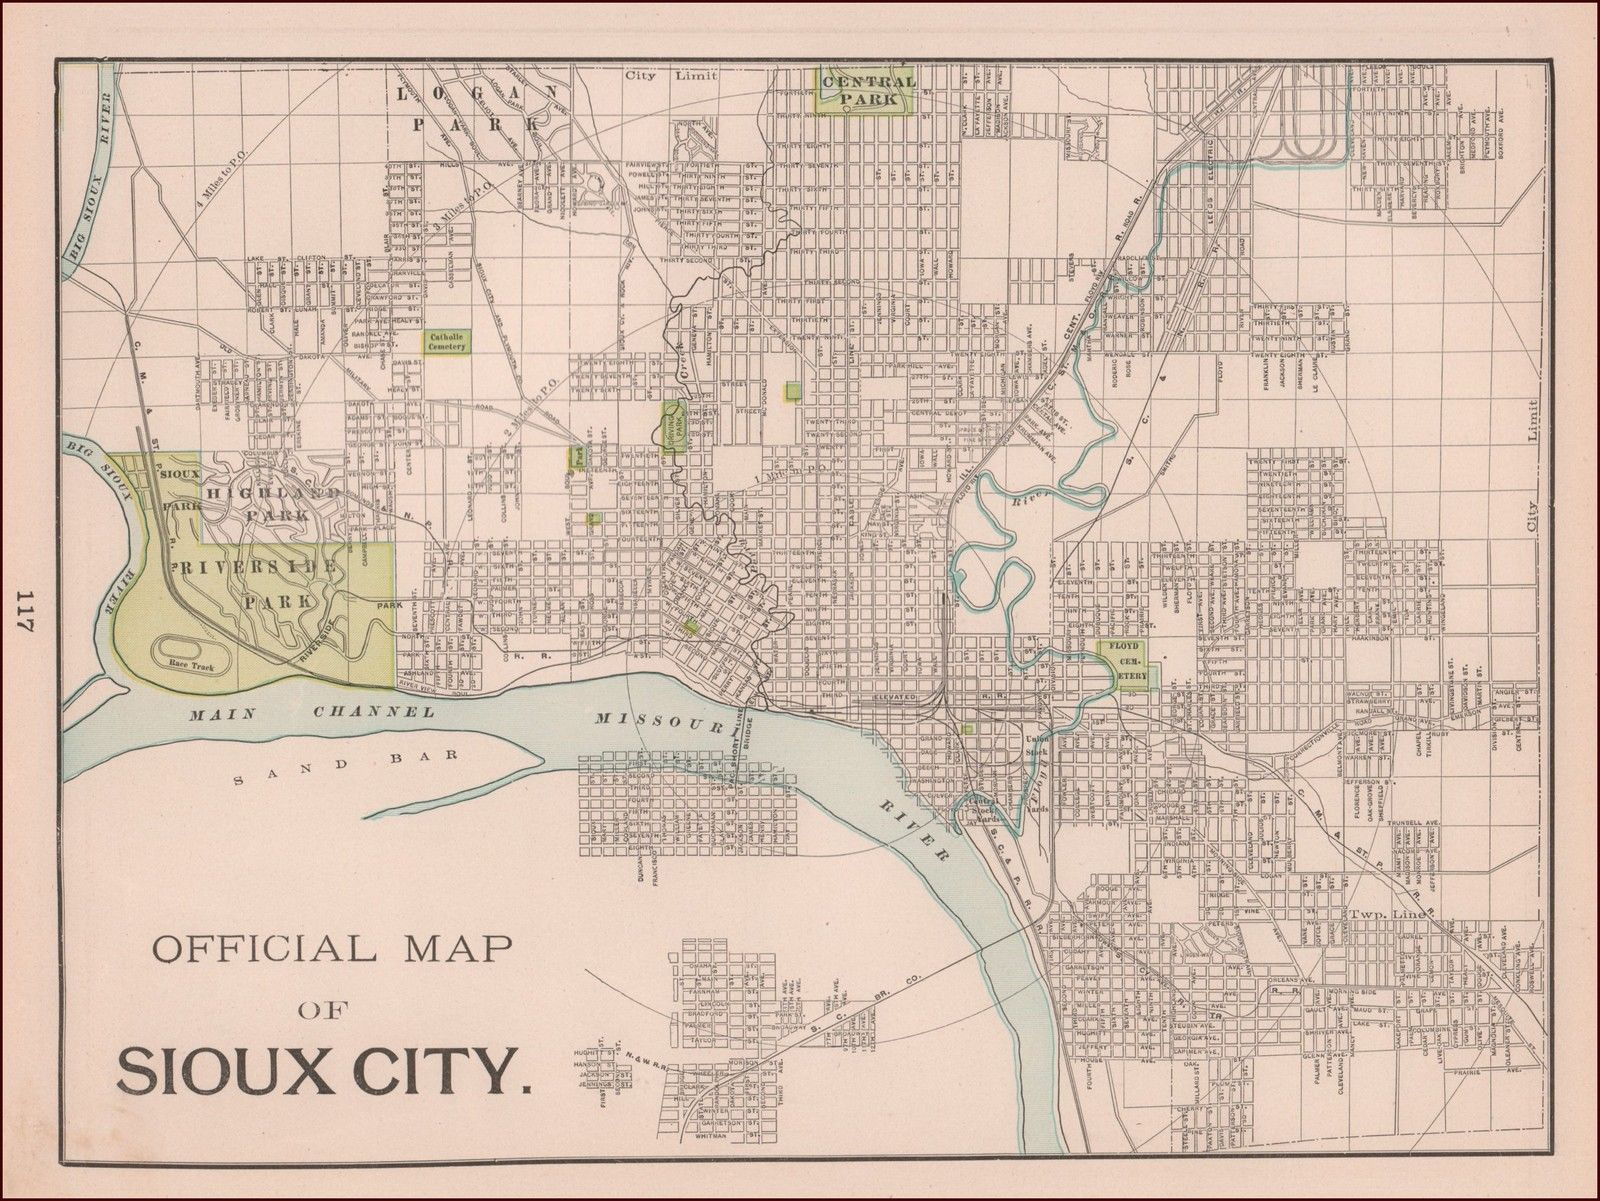 Sioux City Iowa Antique City Map Original 1897 Ebay With Images